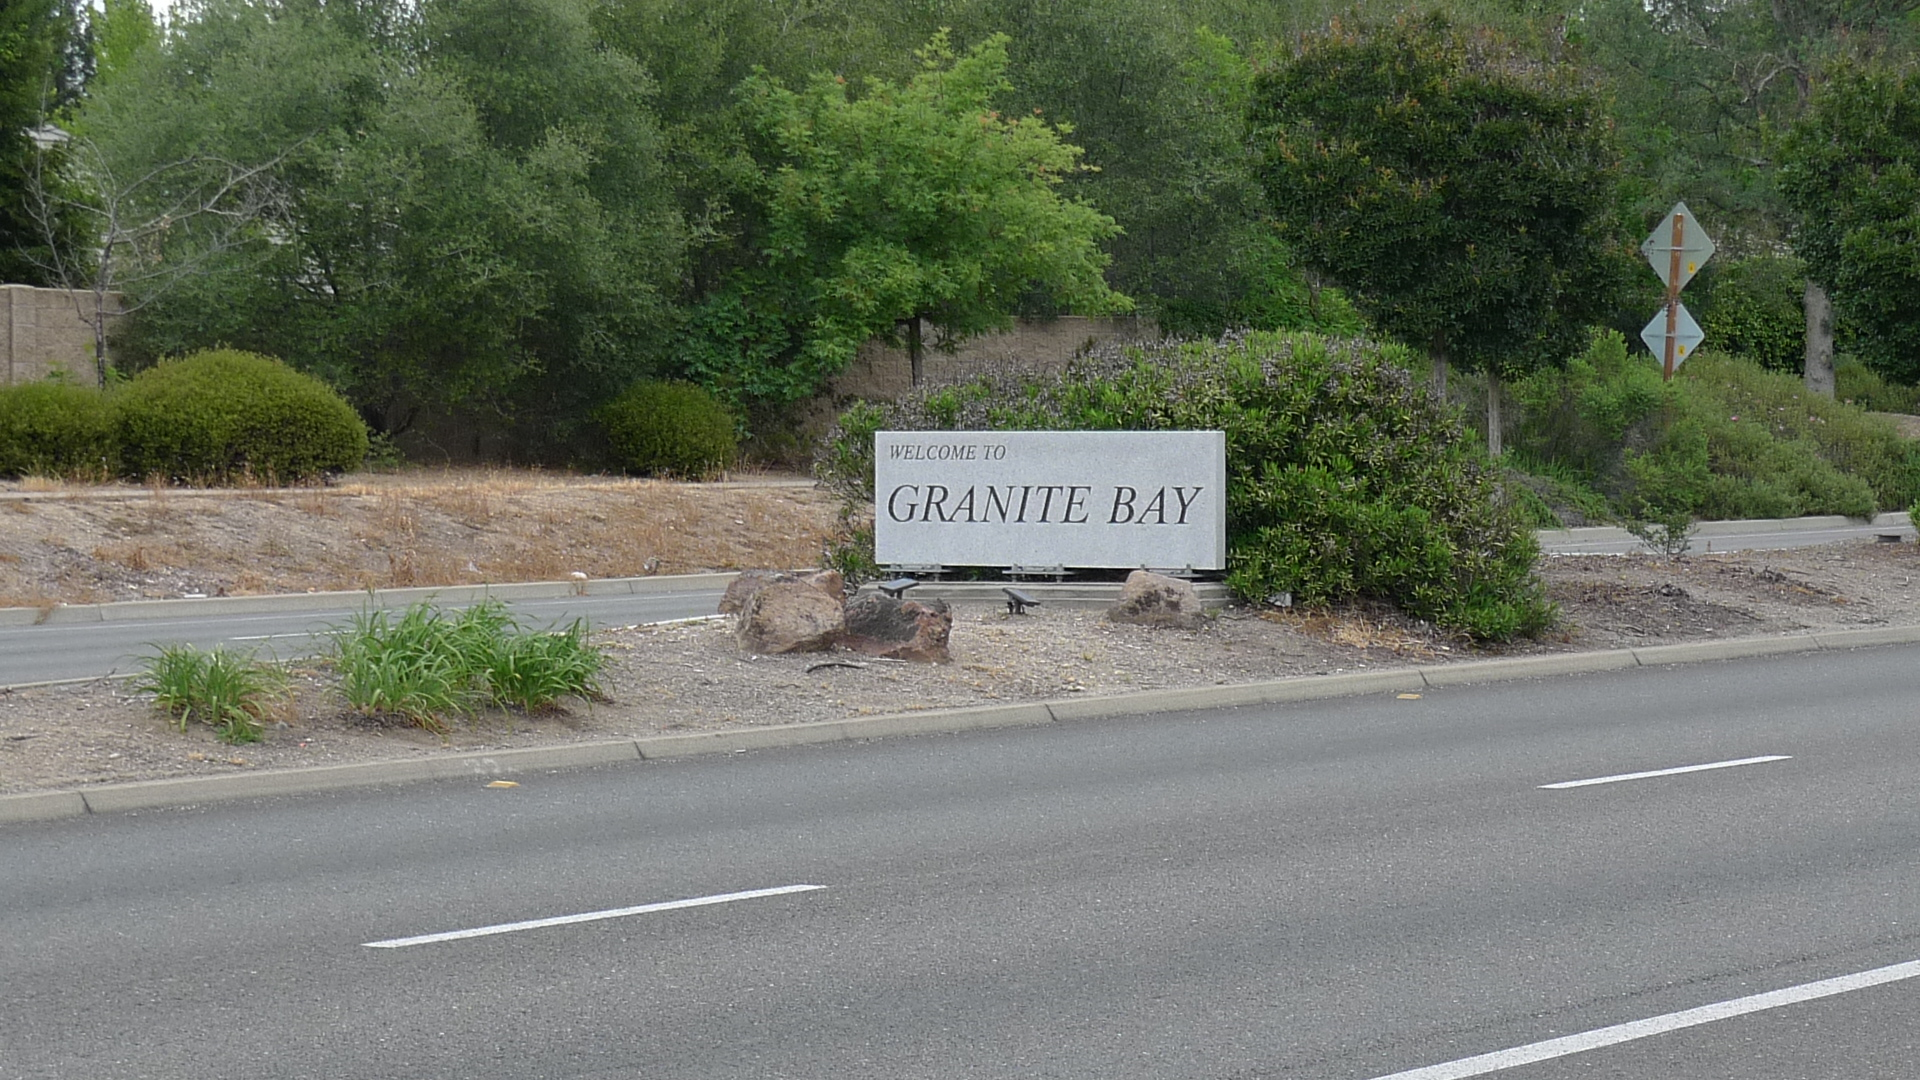 Granite Bay, CA welcome sign Loomis, CA real estate homes houses for sale